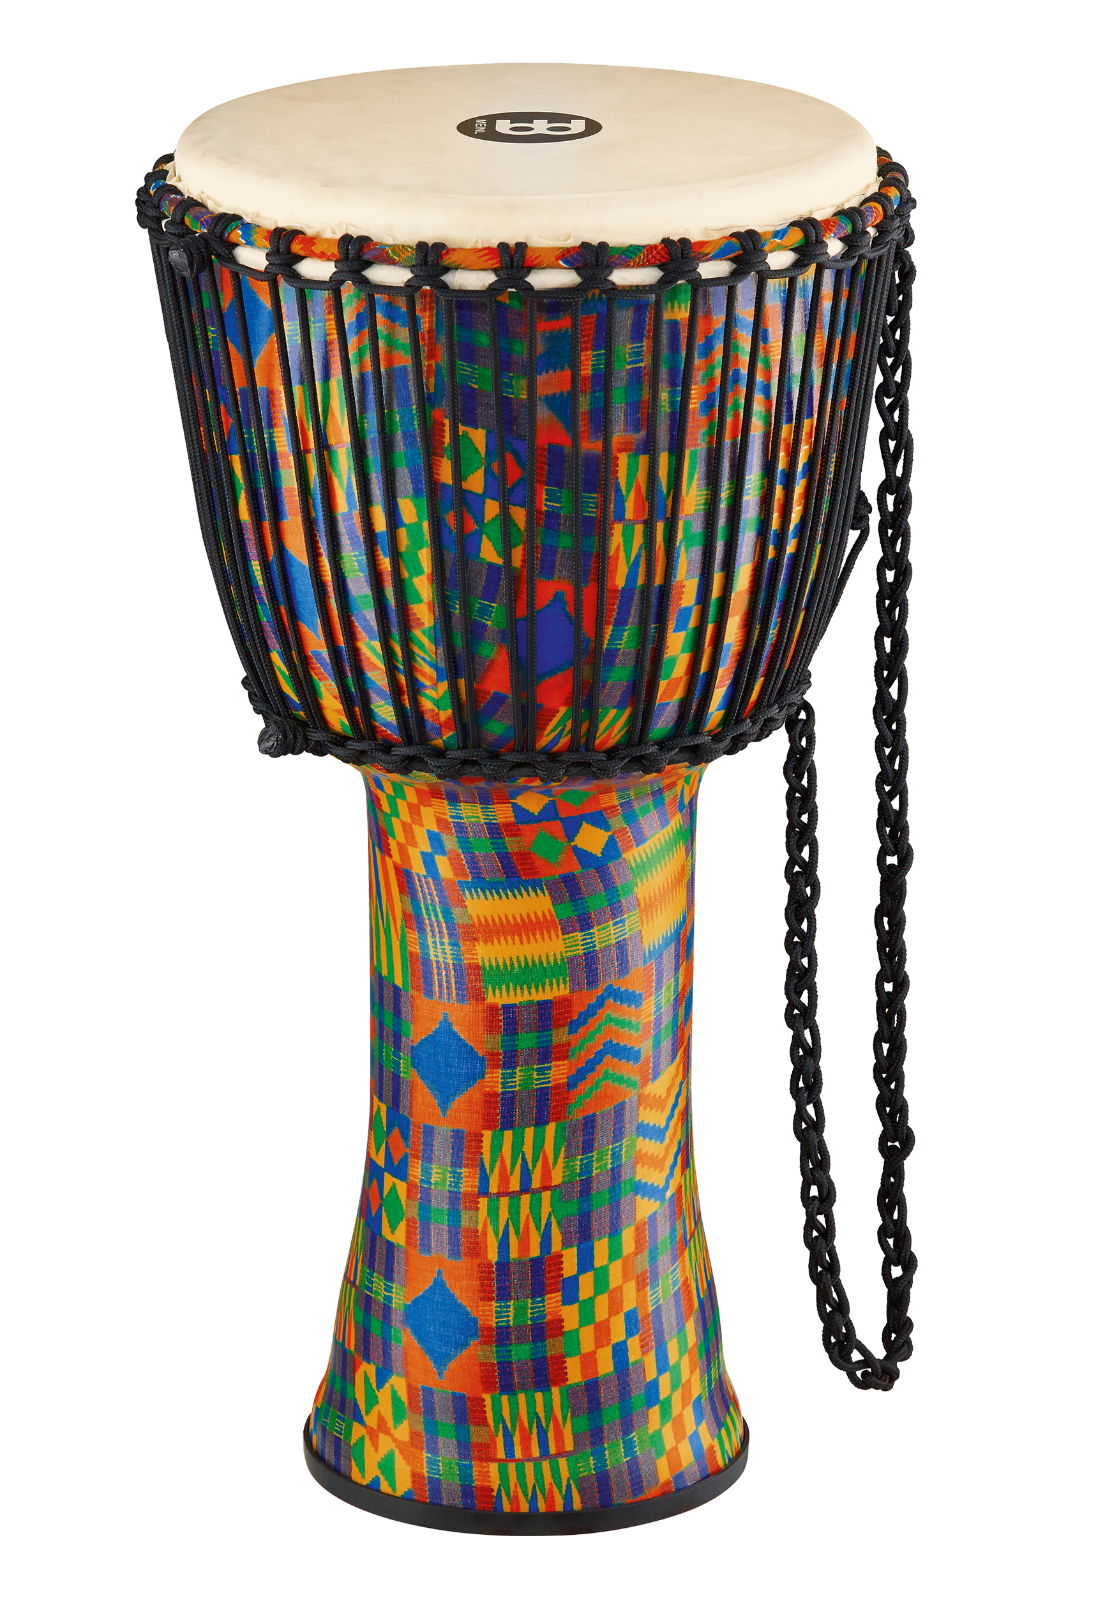 MEINL Percussion Travel Series African Djembe Kenyan Quilt Large - Naturfell